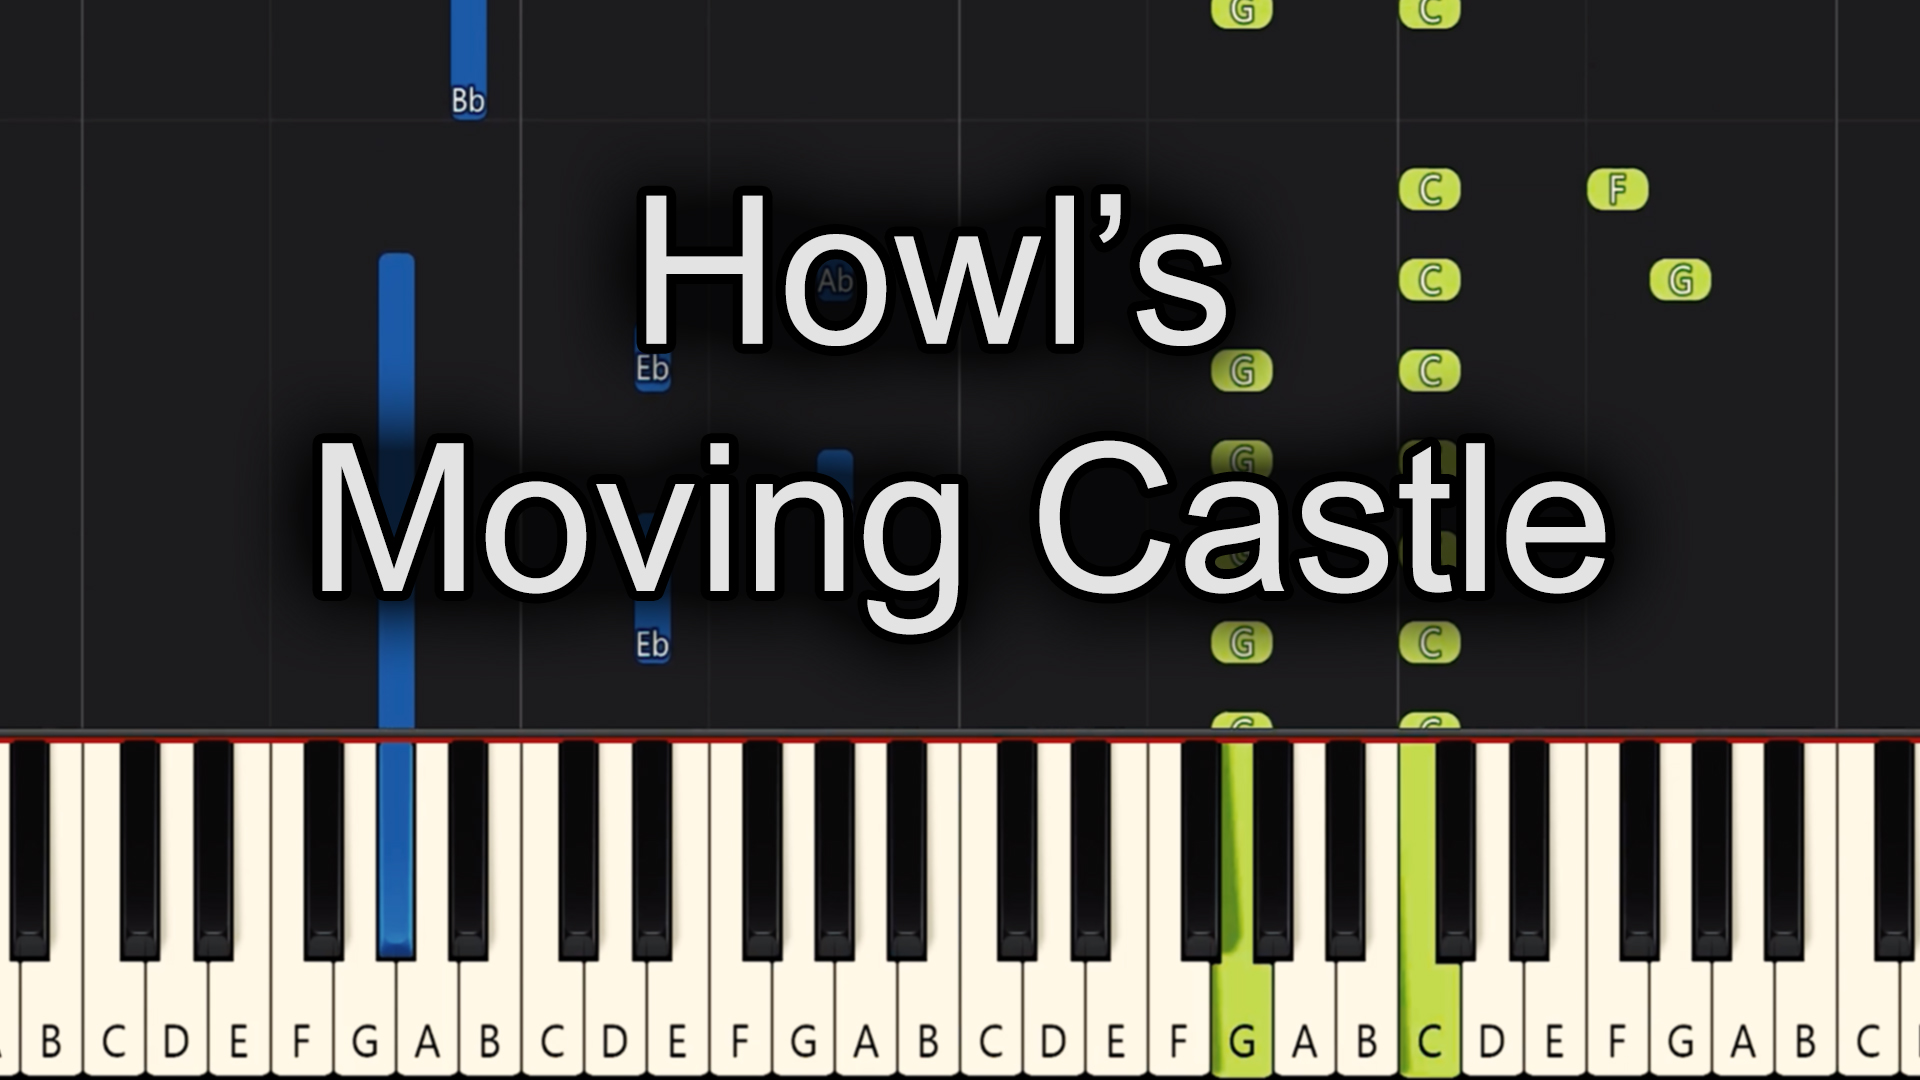 Howl's Moving Castle – Advanced